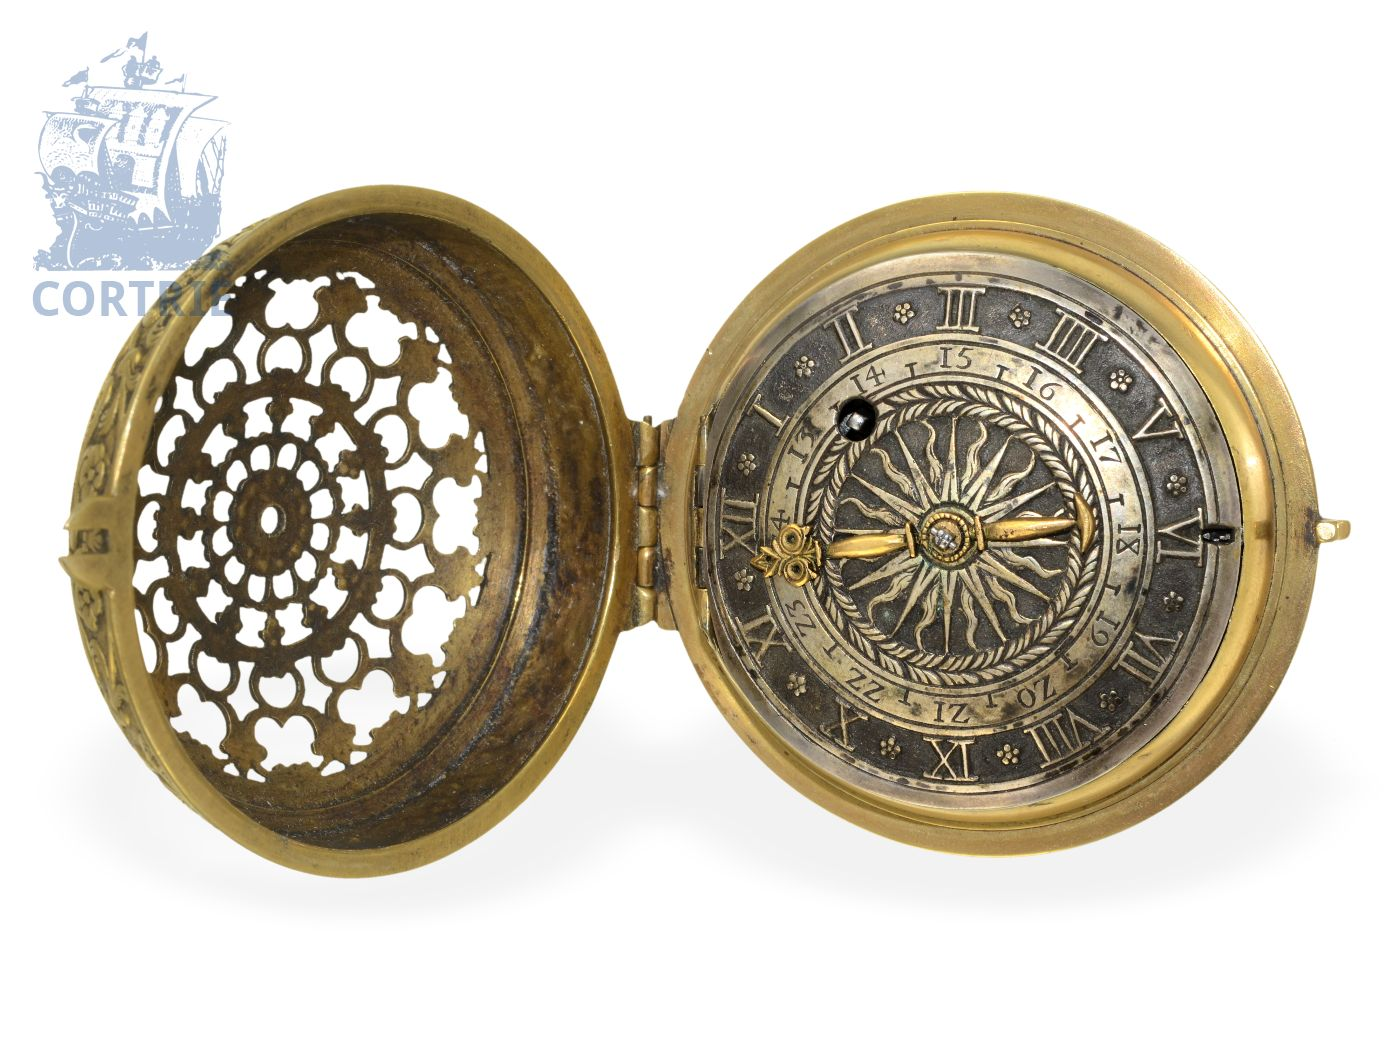 Pocket watch: extravagant and very early pocket watch with special foliot, probably 1580 and later-